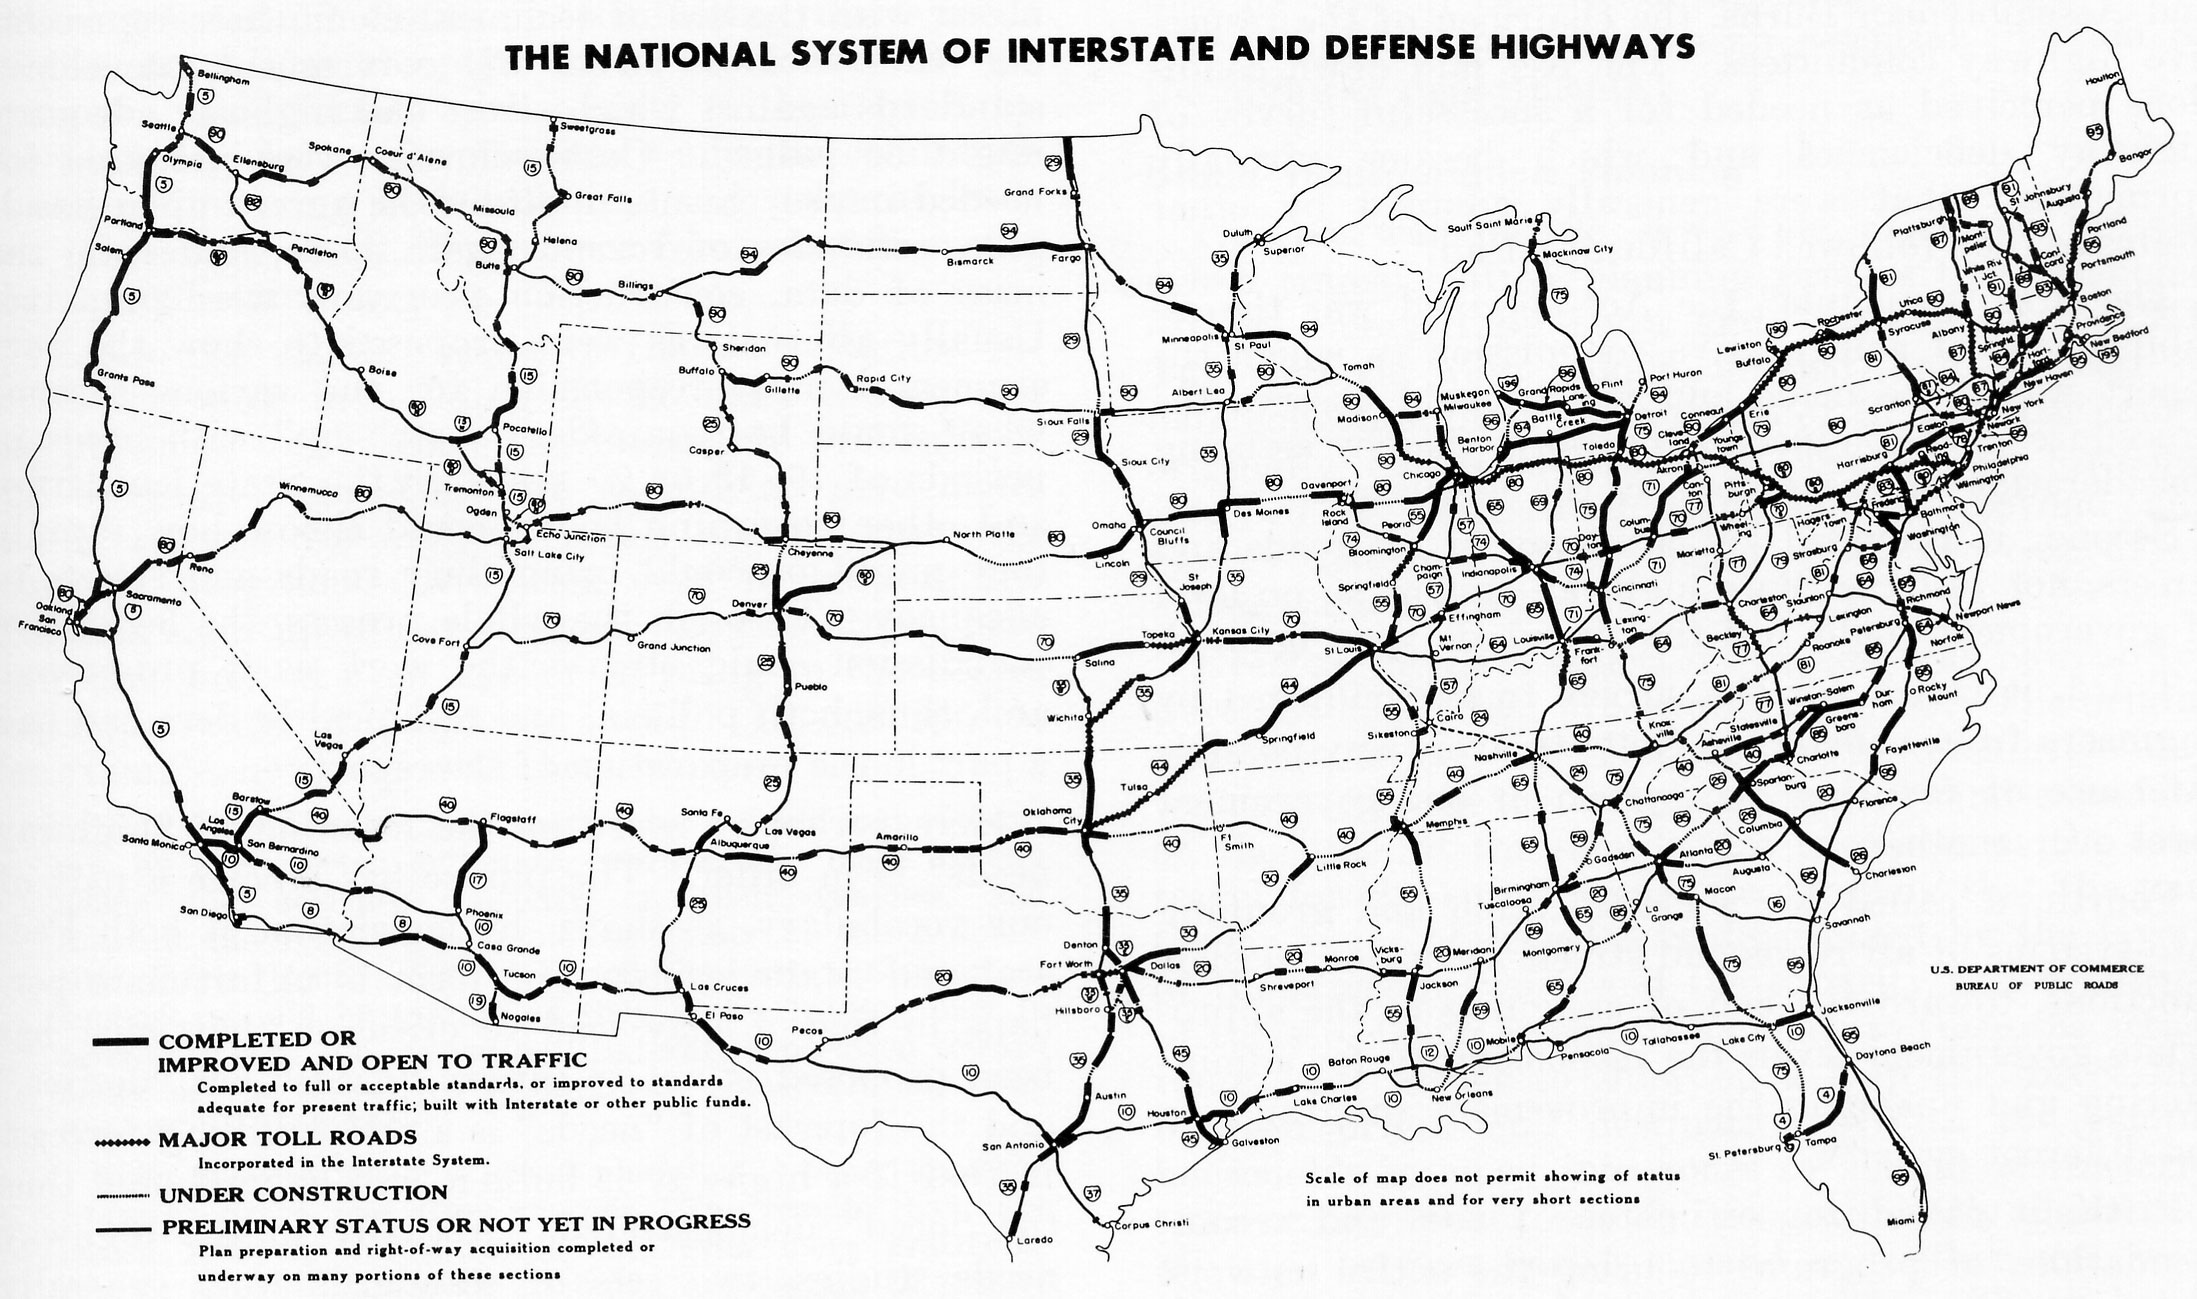 FileInterstate Highway Status Unknown Datejpg Wikimedia Commons - Us interstate map states